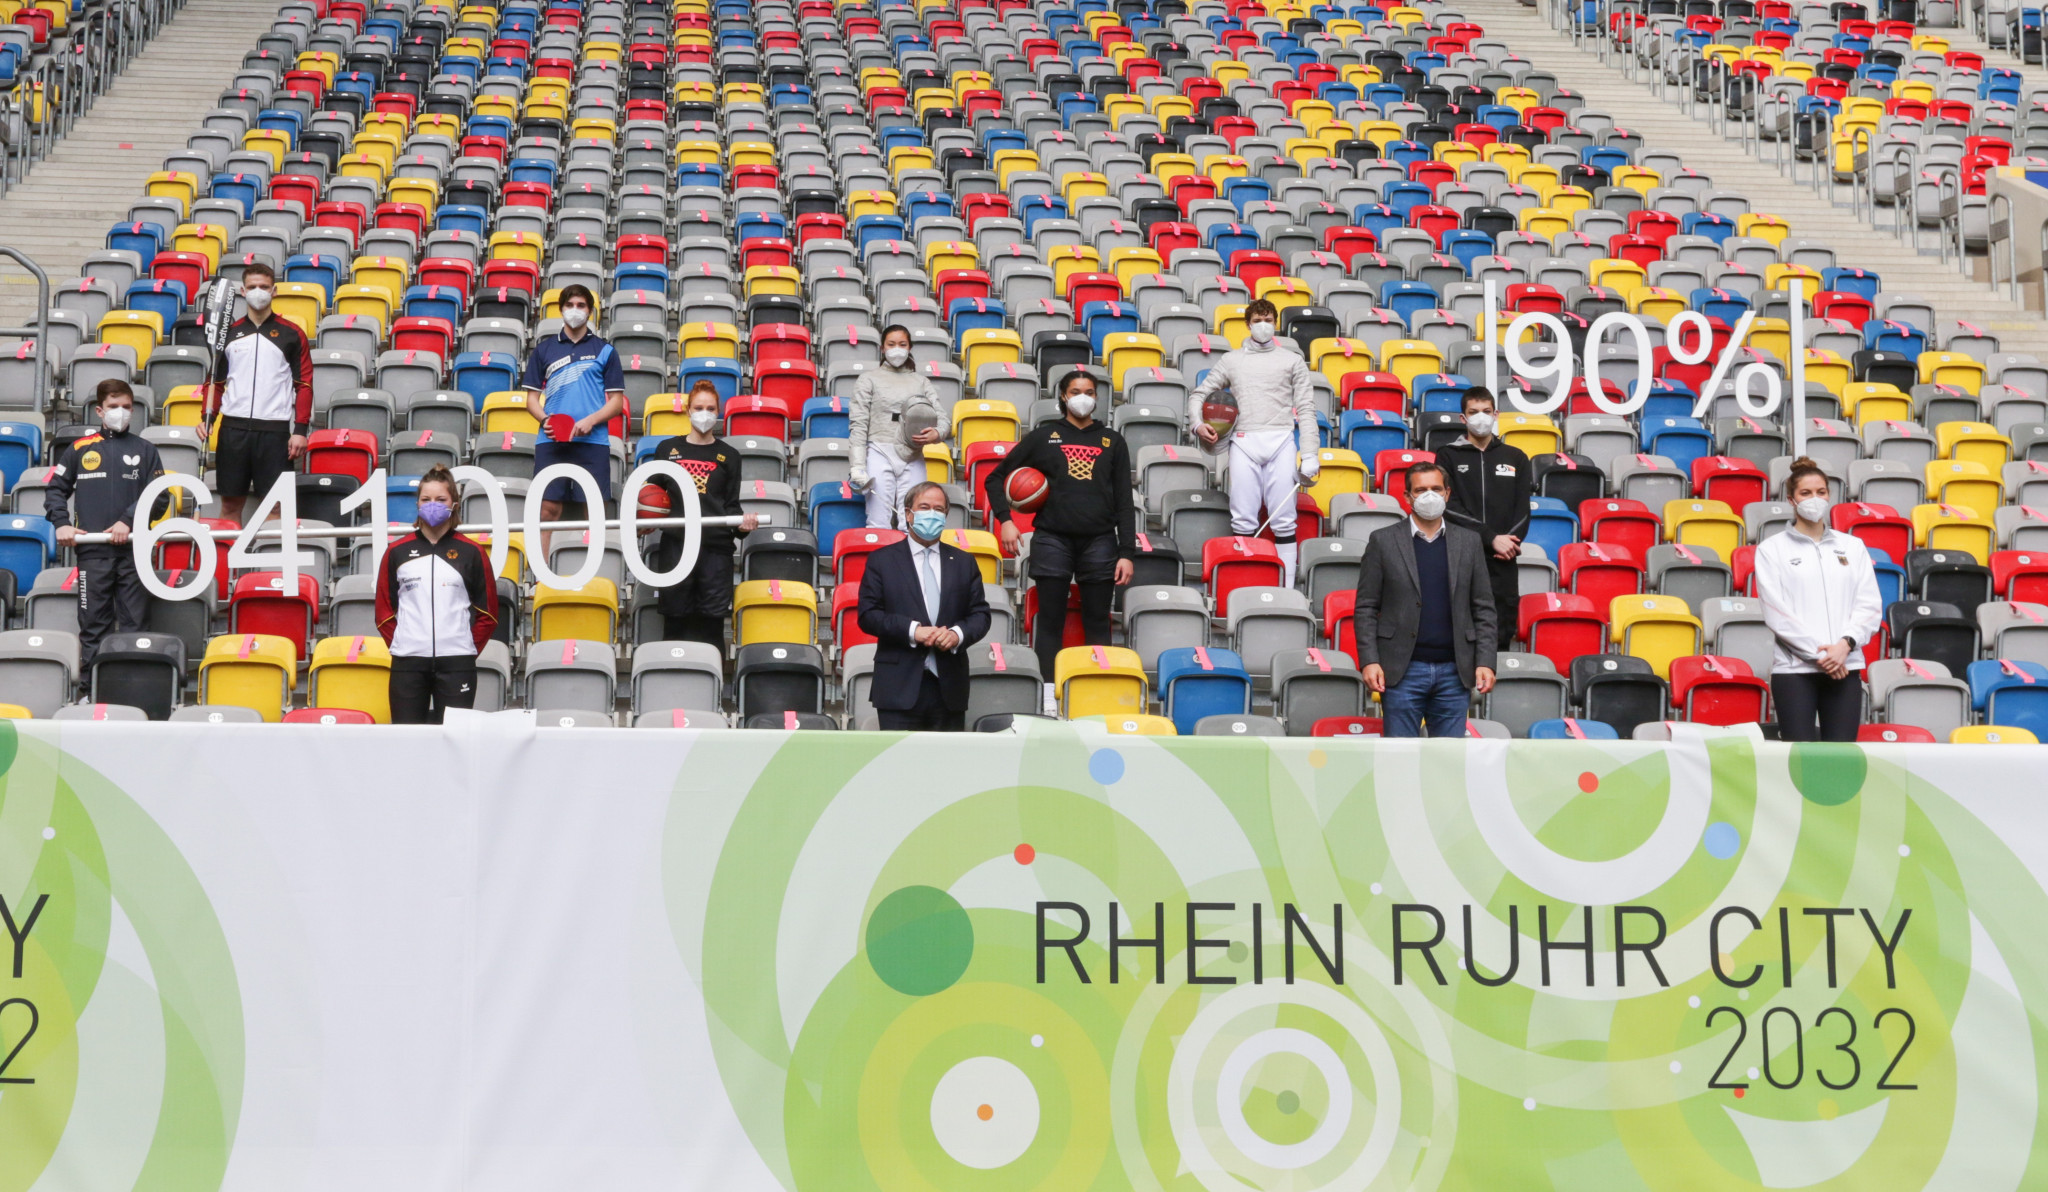 The Rhine-Ruhr region had hoped to bid for the 2032 Olympic and Paralympic Games ©Getty Images